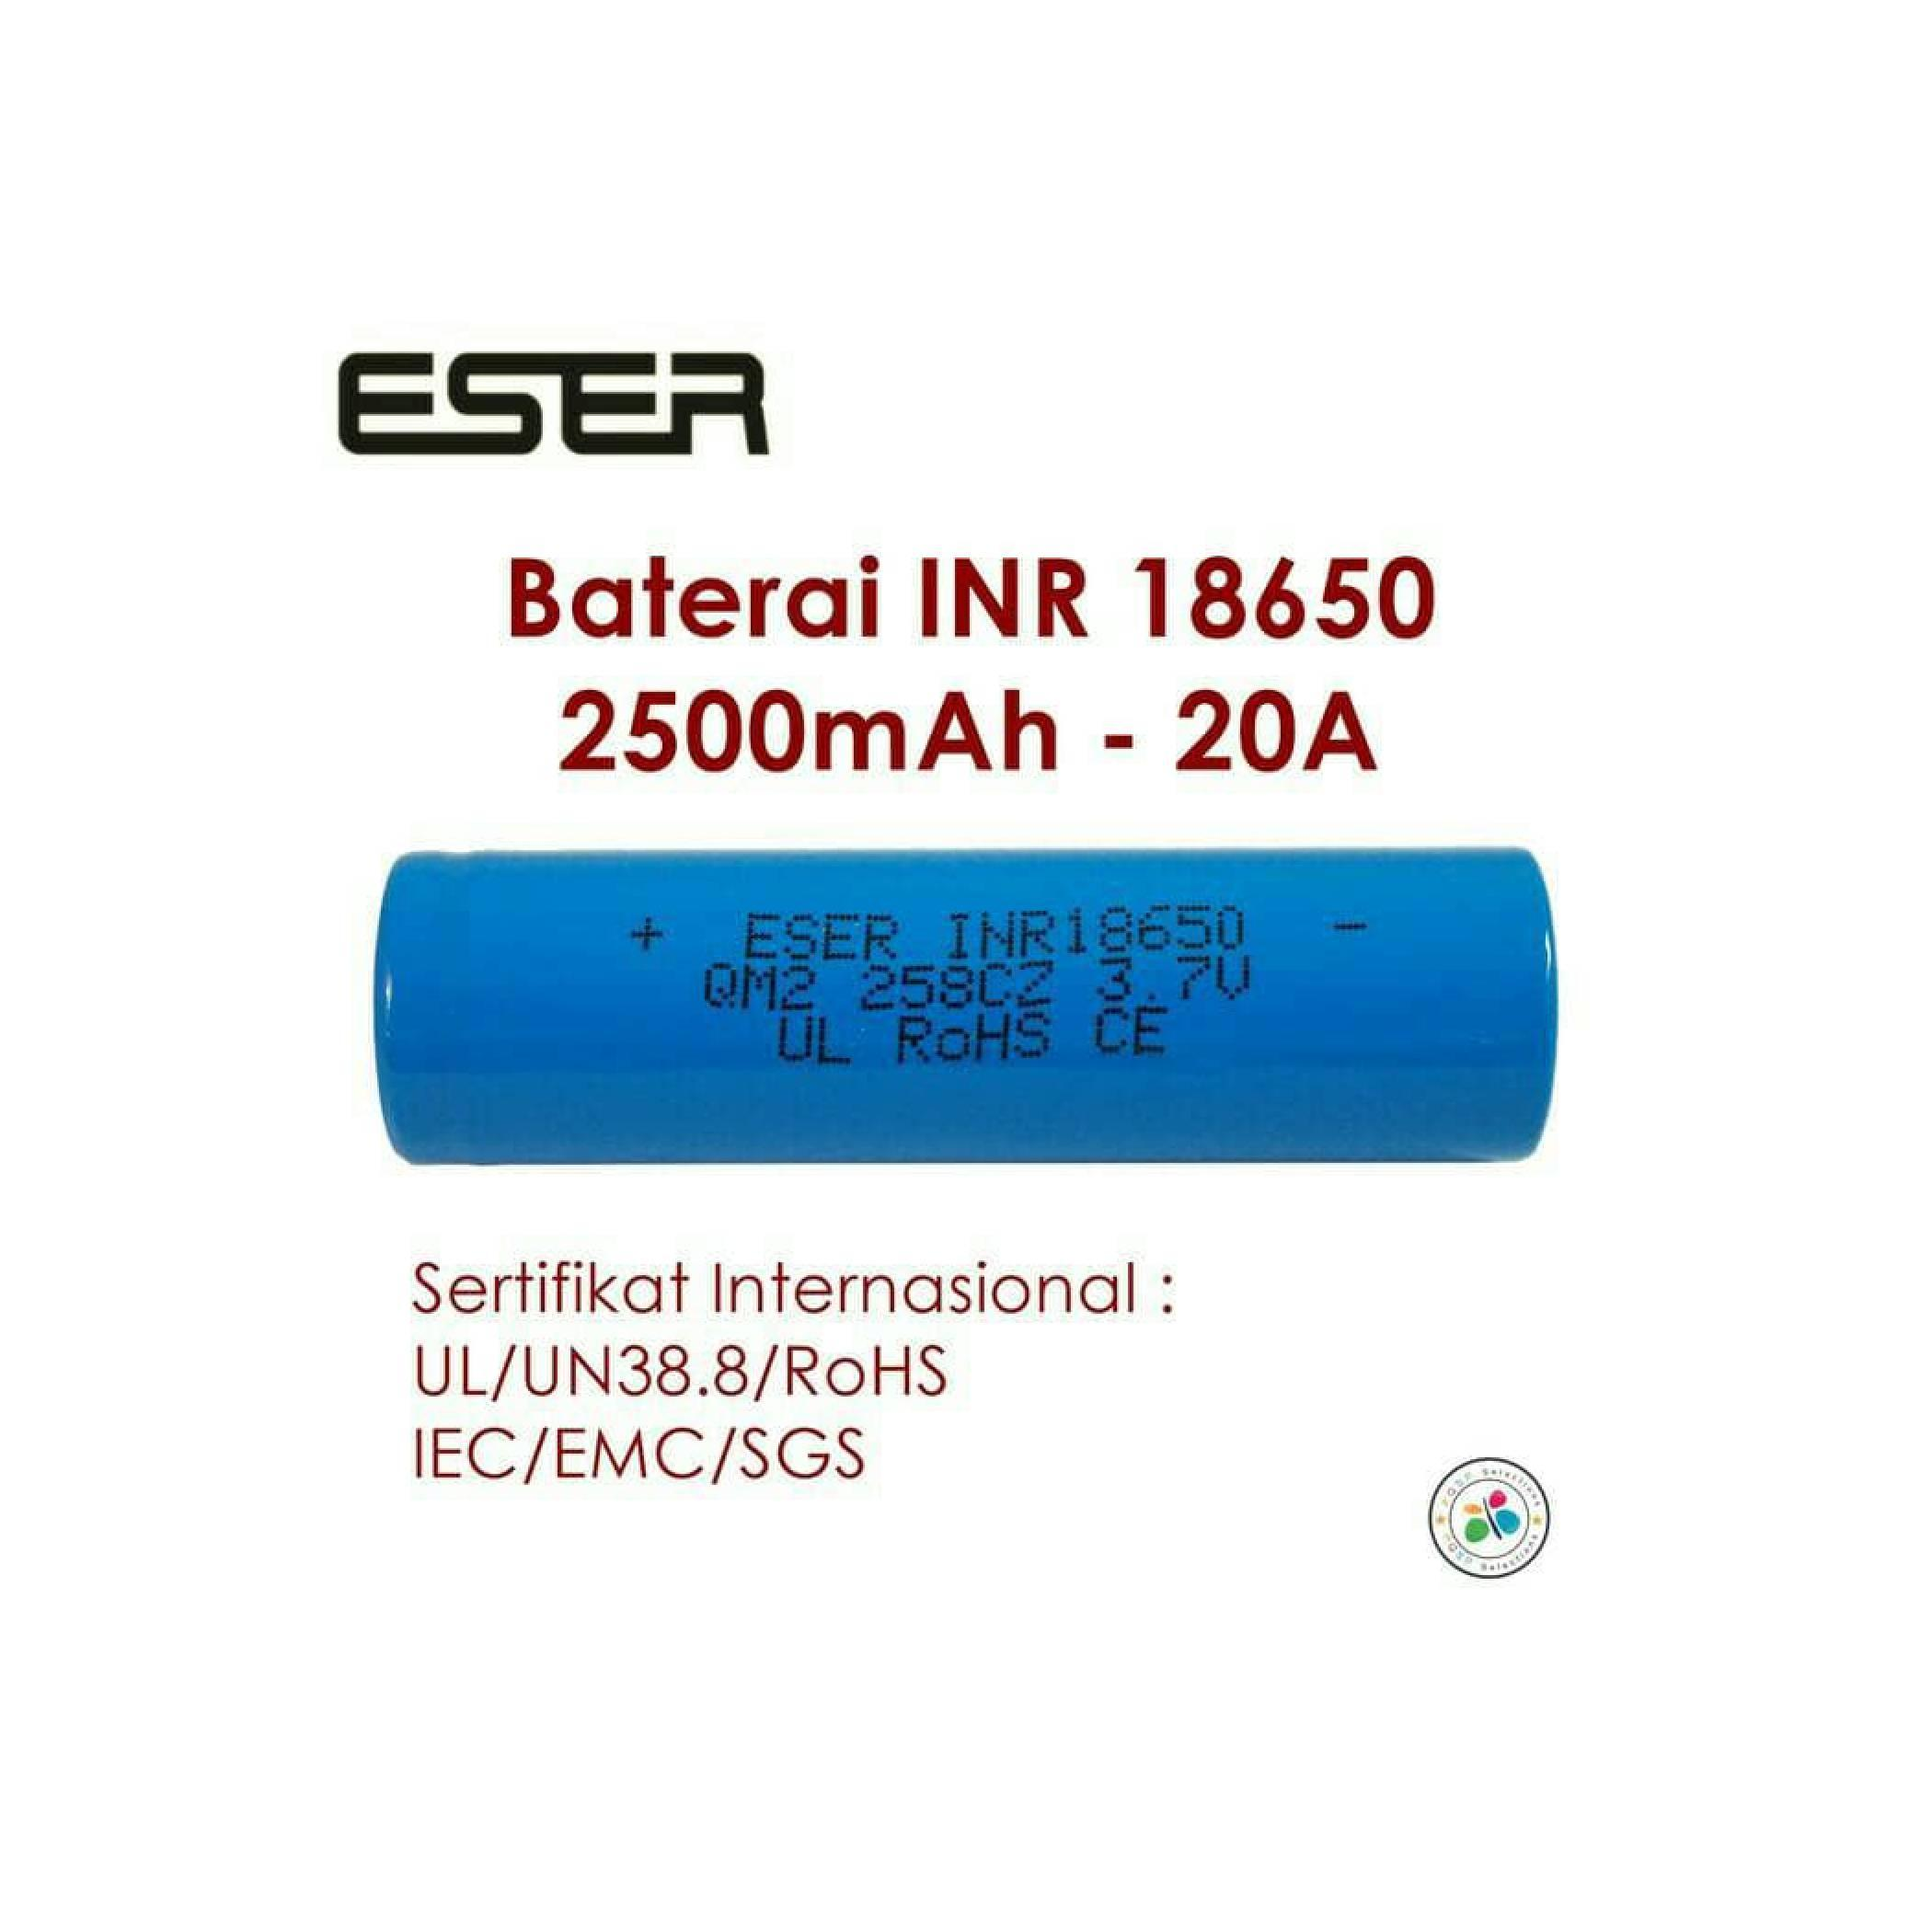 Buy Sell Cheapest Eser 6 Dual Best Quality Product Deals Turbo Charger Battery 18650 Inr Imr Icr Fast Quick Baterai Sale Chg6 Original Idr 83000 Idr83000 View Detail Rokok Elektrik Vape